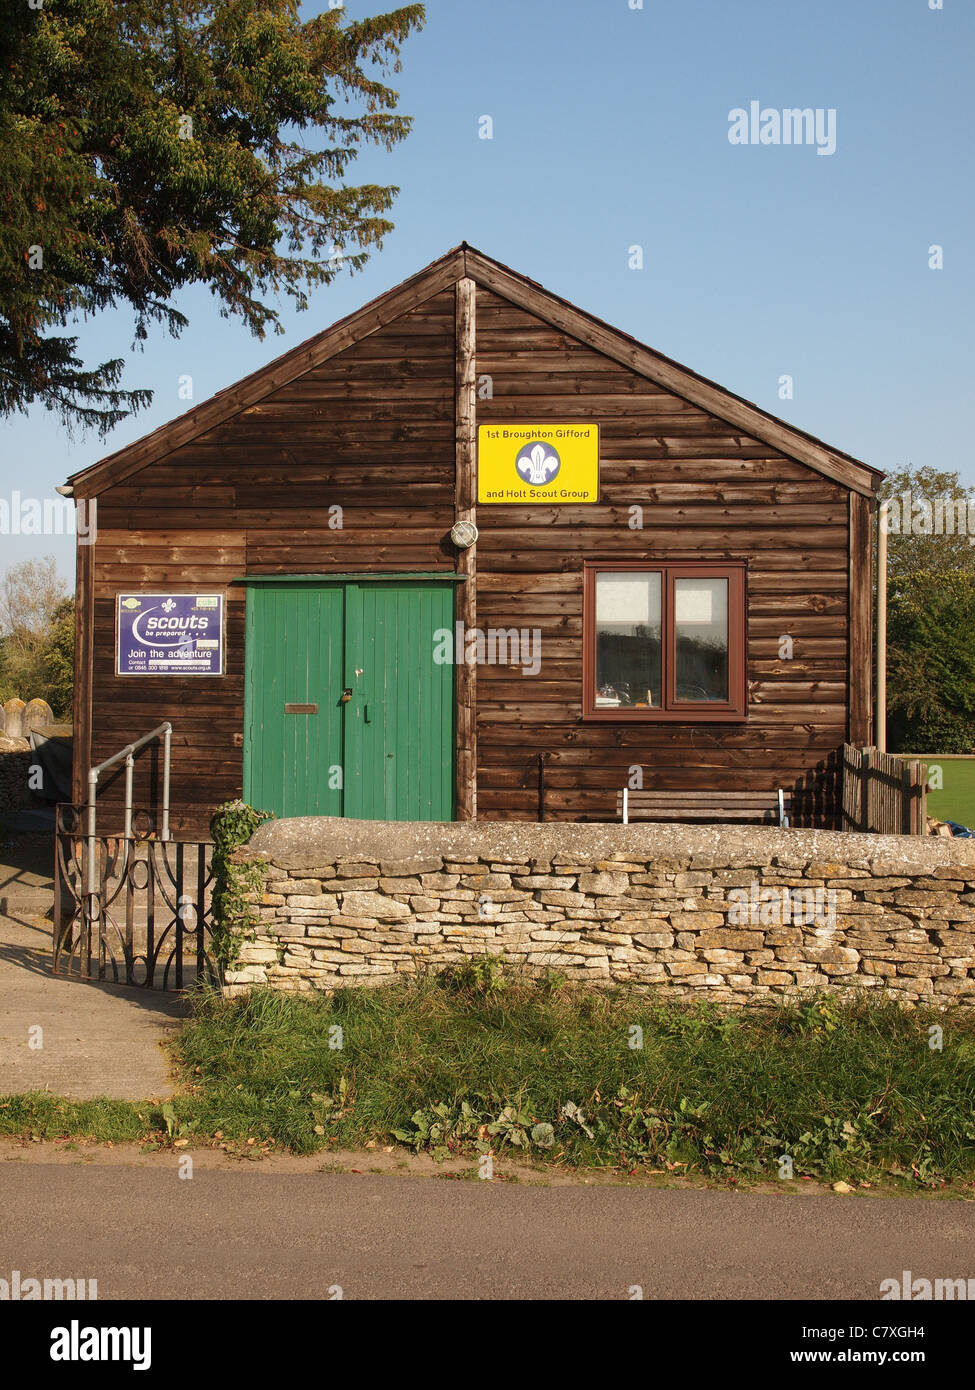 Scout Hut Broughton Gifford - Stock Image